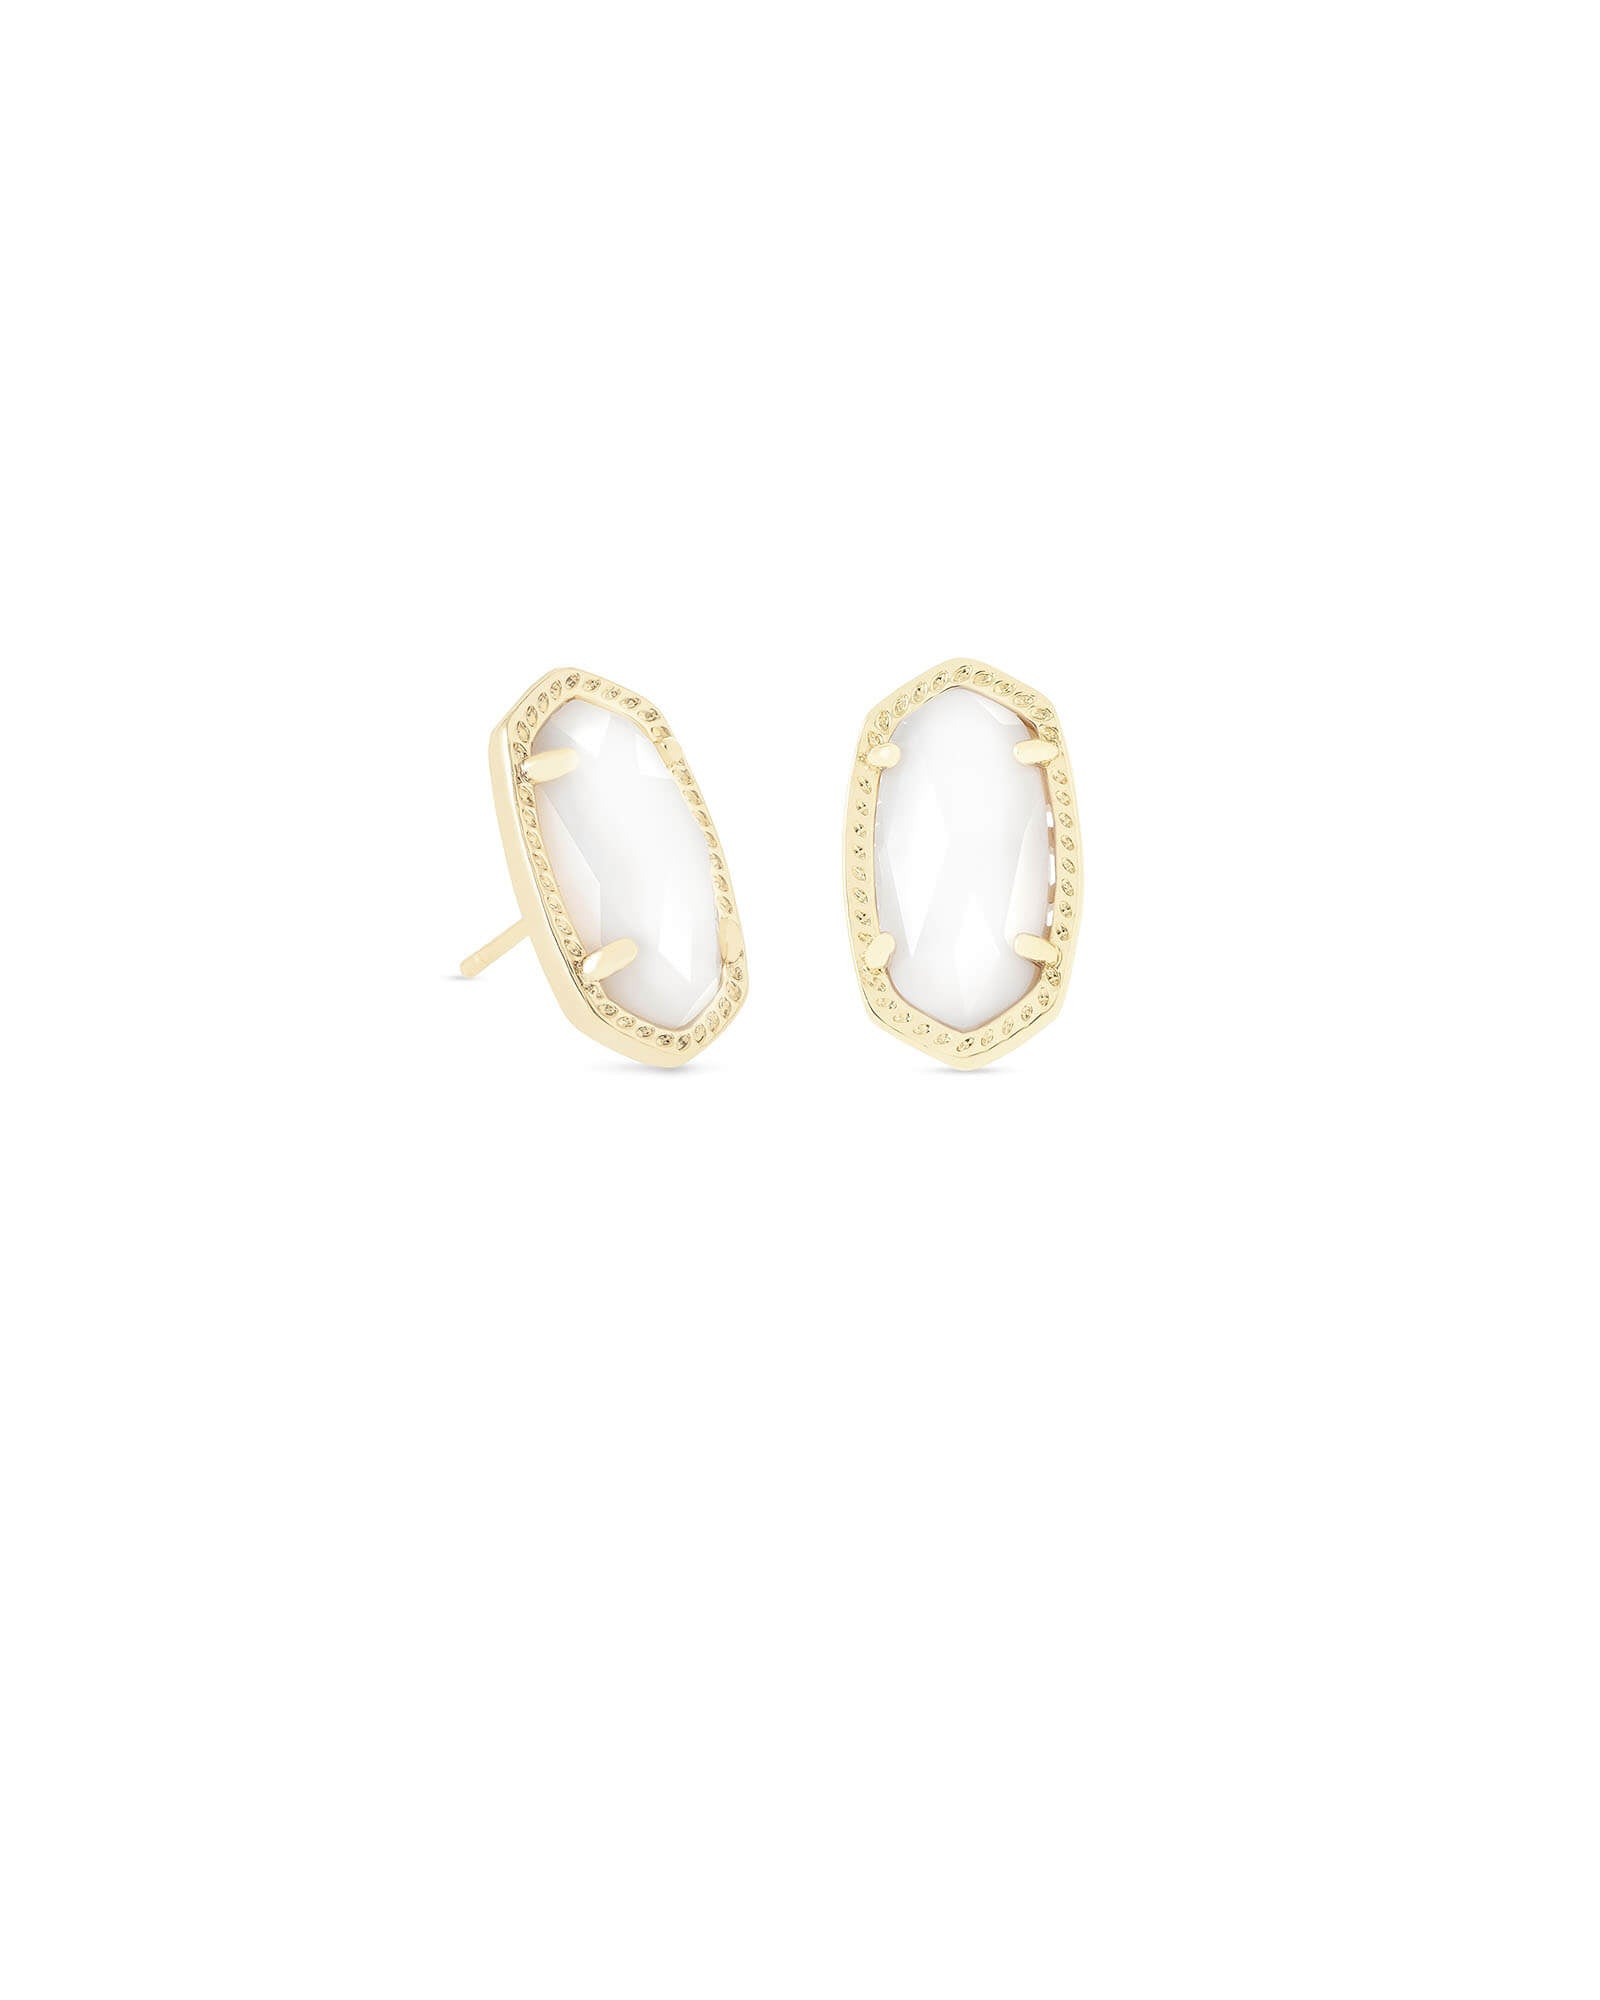 Ellie Gold Stud Earrings In Mother of Pearl